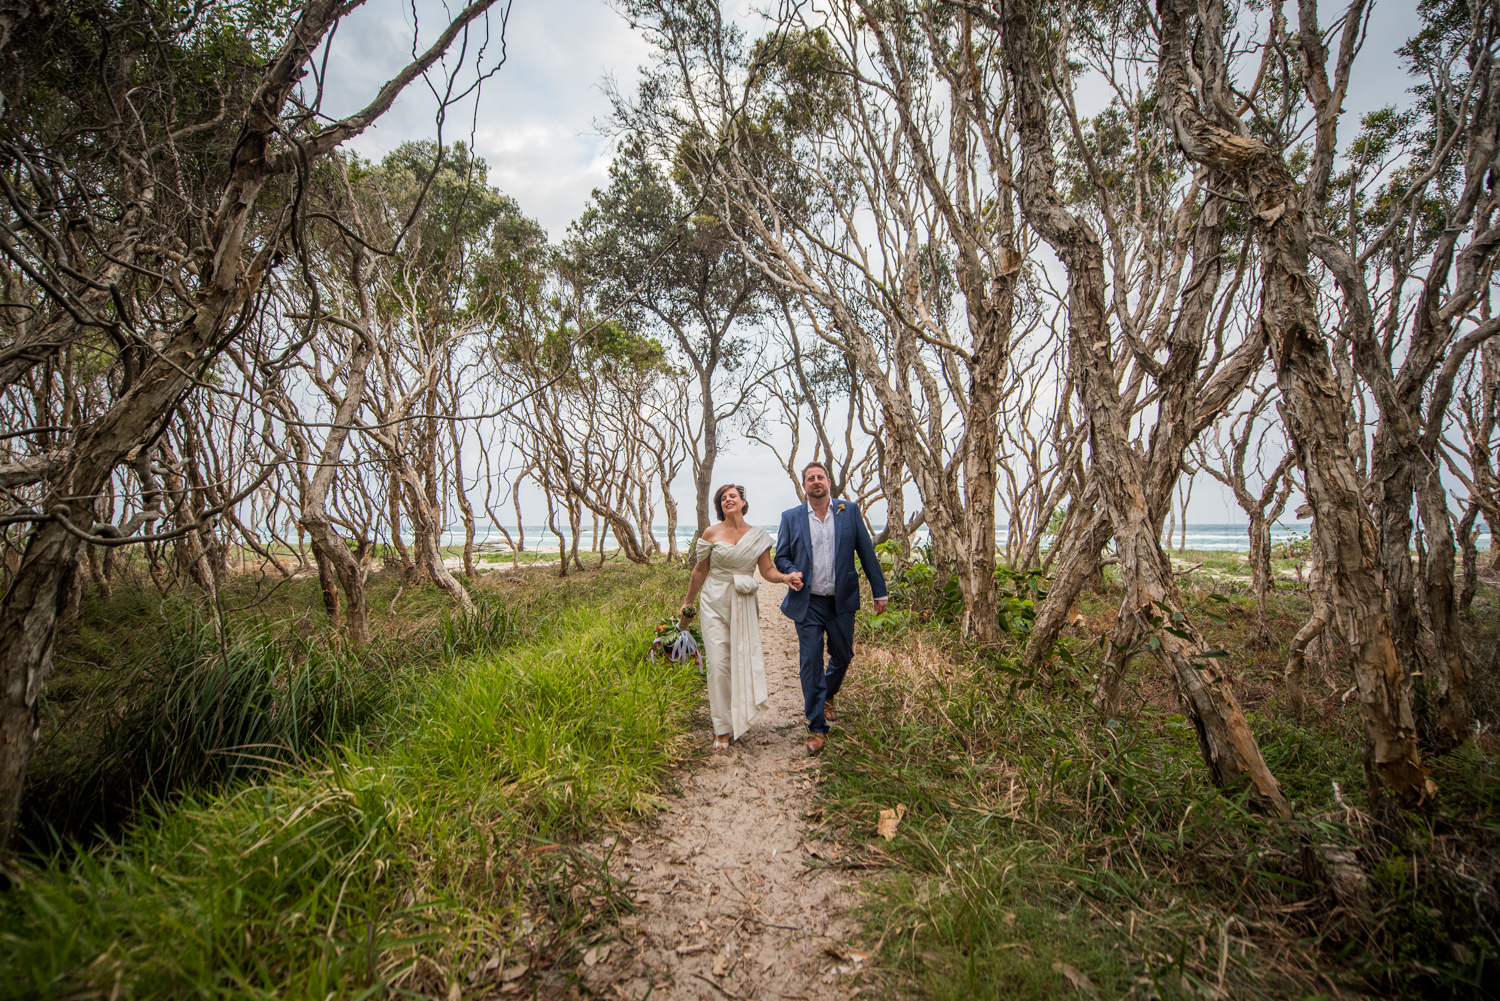 wedding couple on a beach path